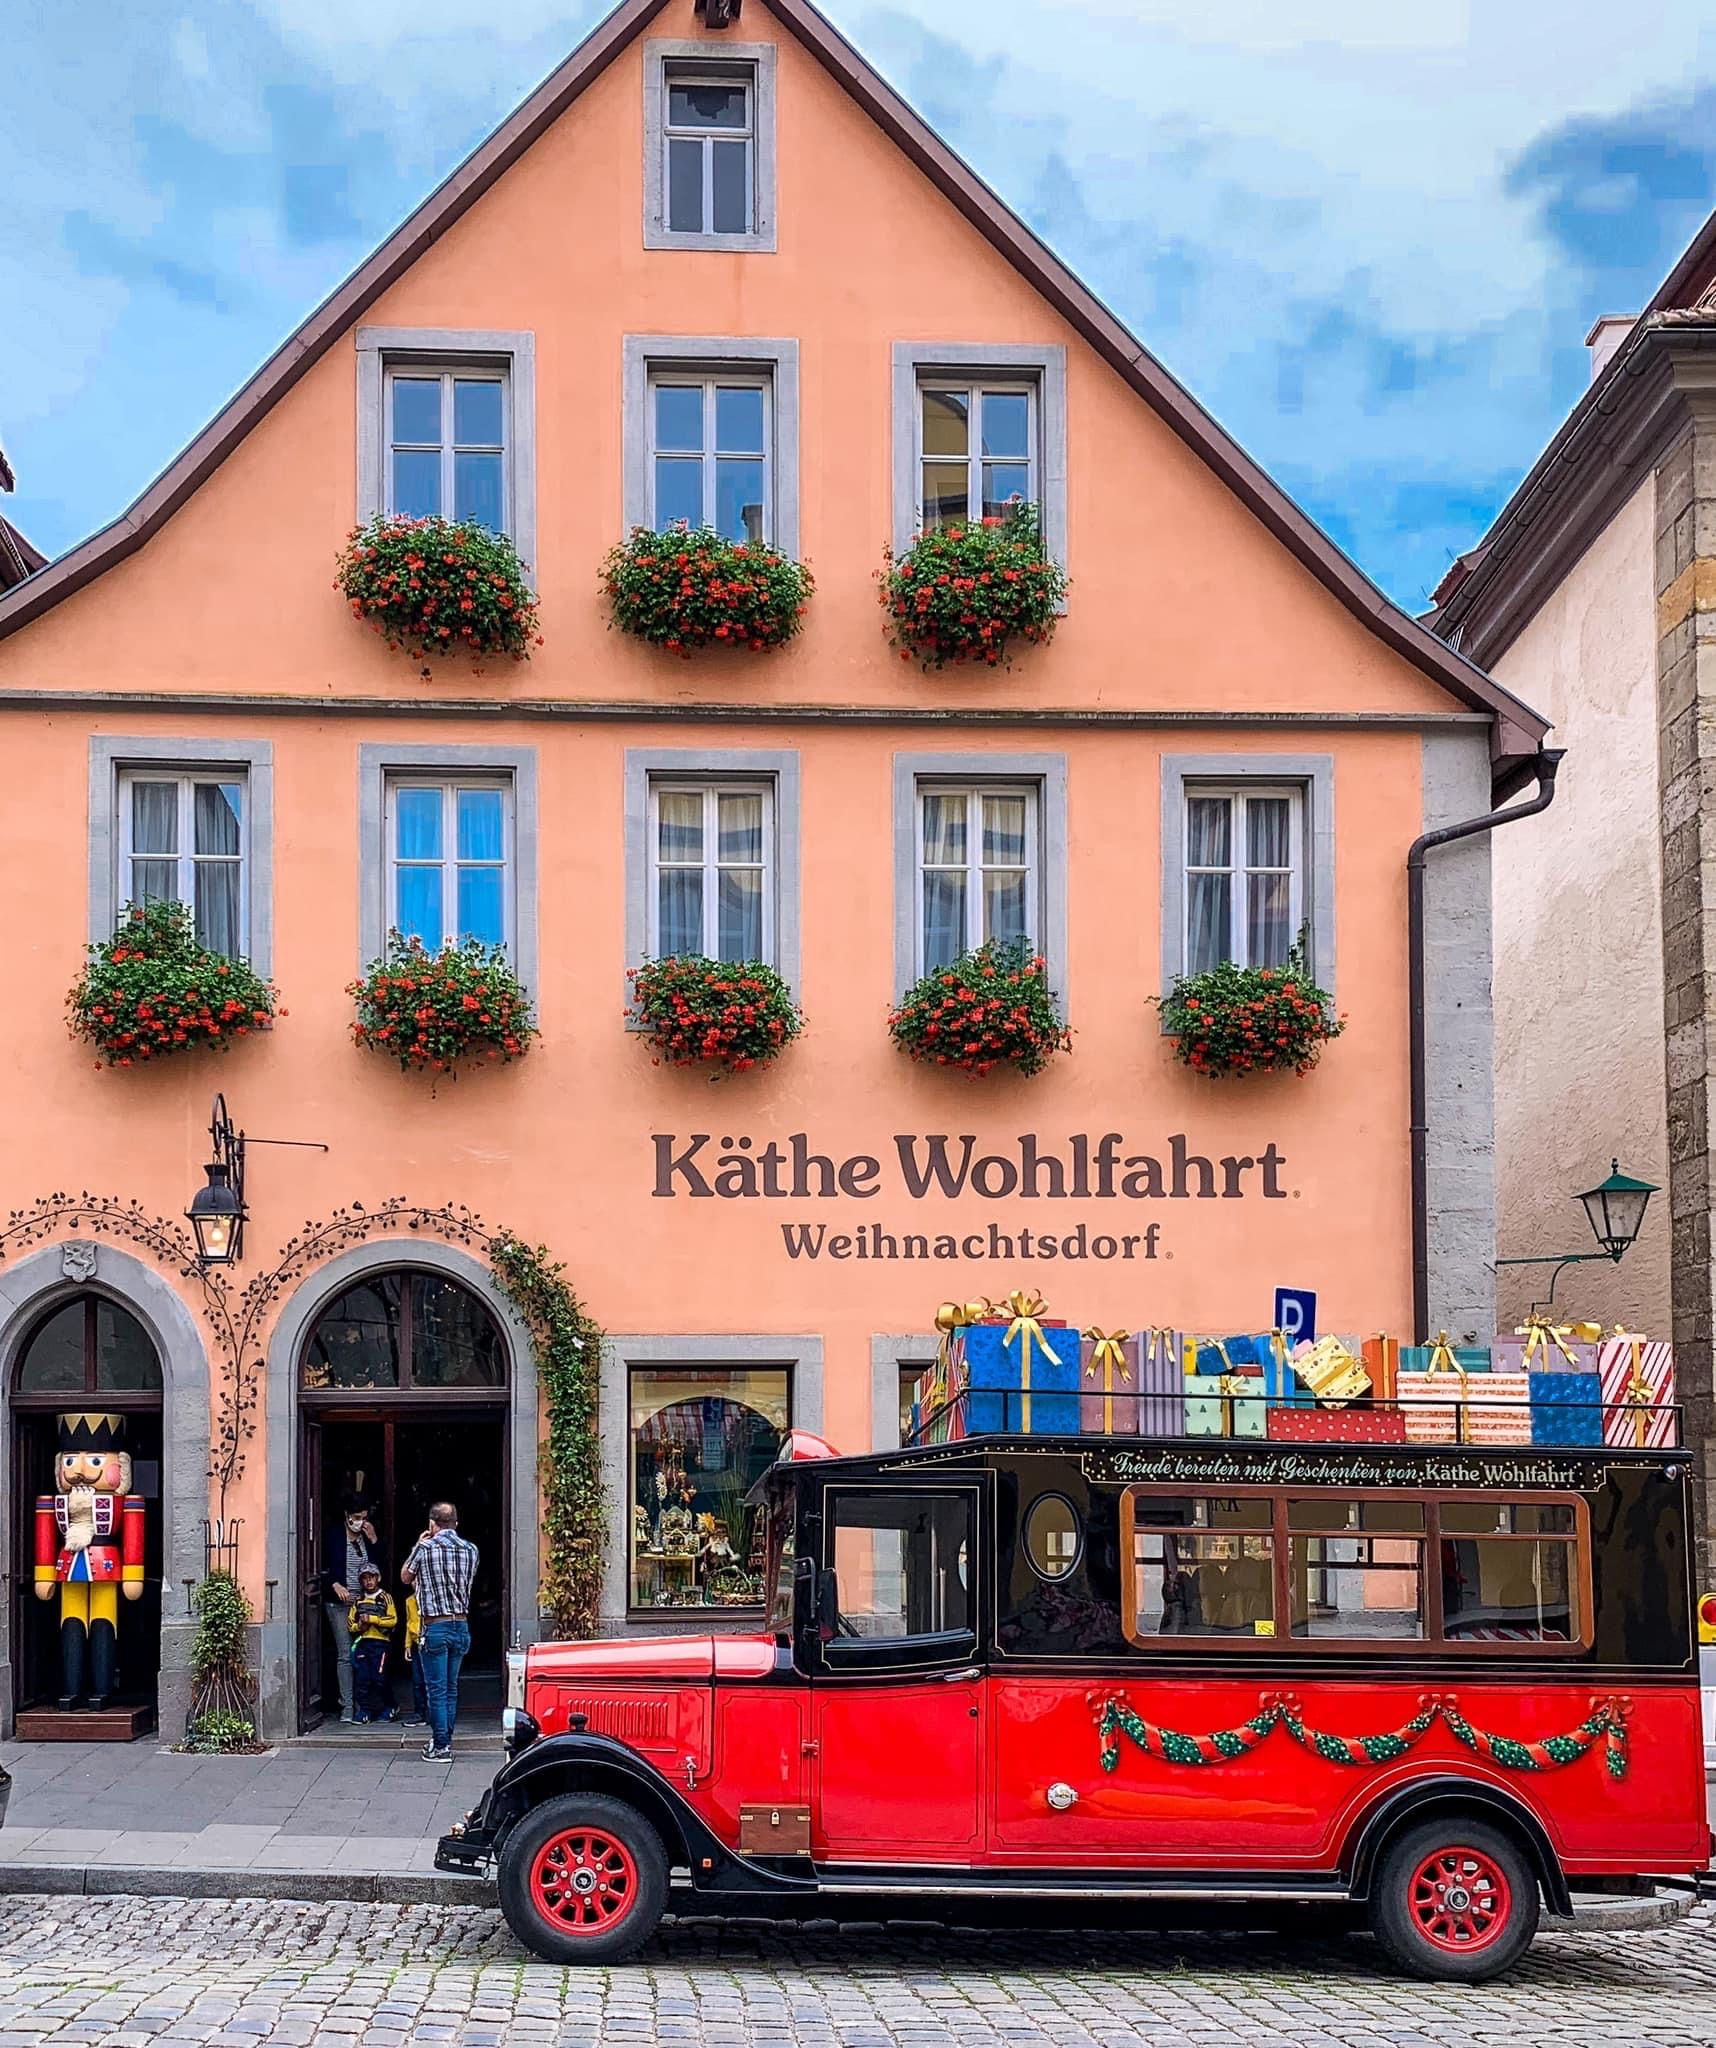 Rothenburg Ob Der Tauber Was Established In The Year 950 This Quaint Fairytale Village Is The Best Preserved Medieval Town In Germany And Wa